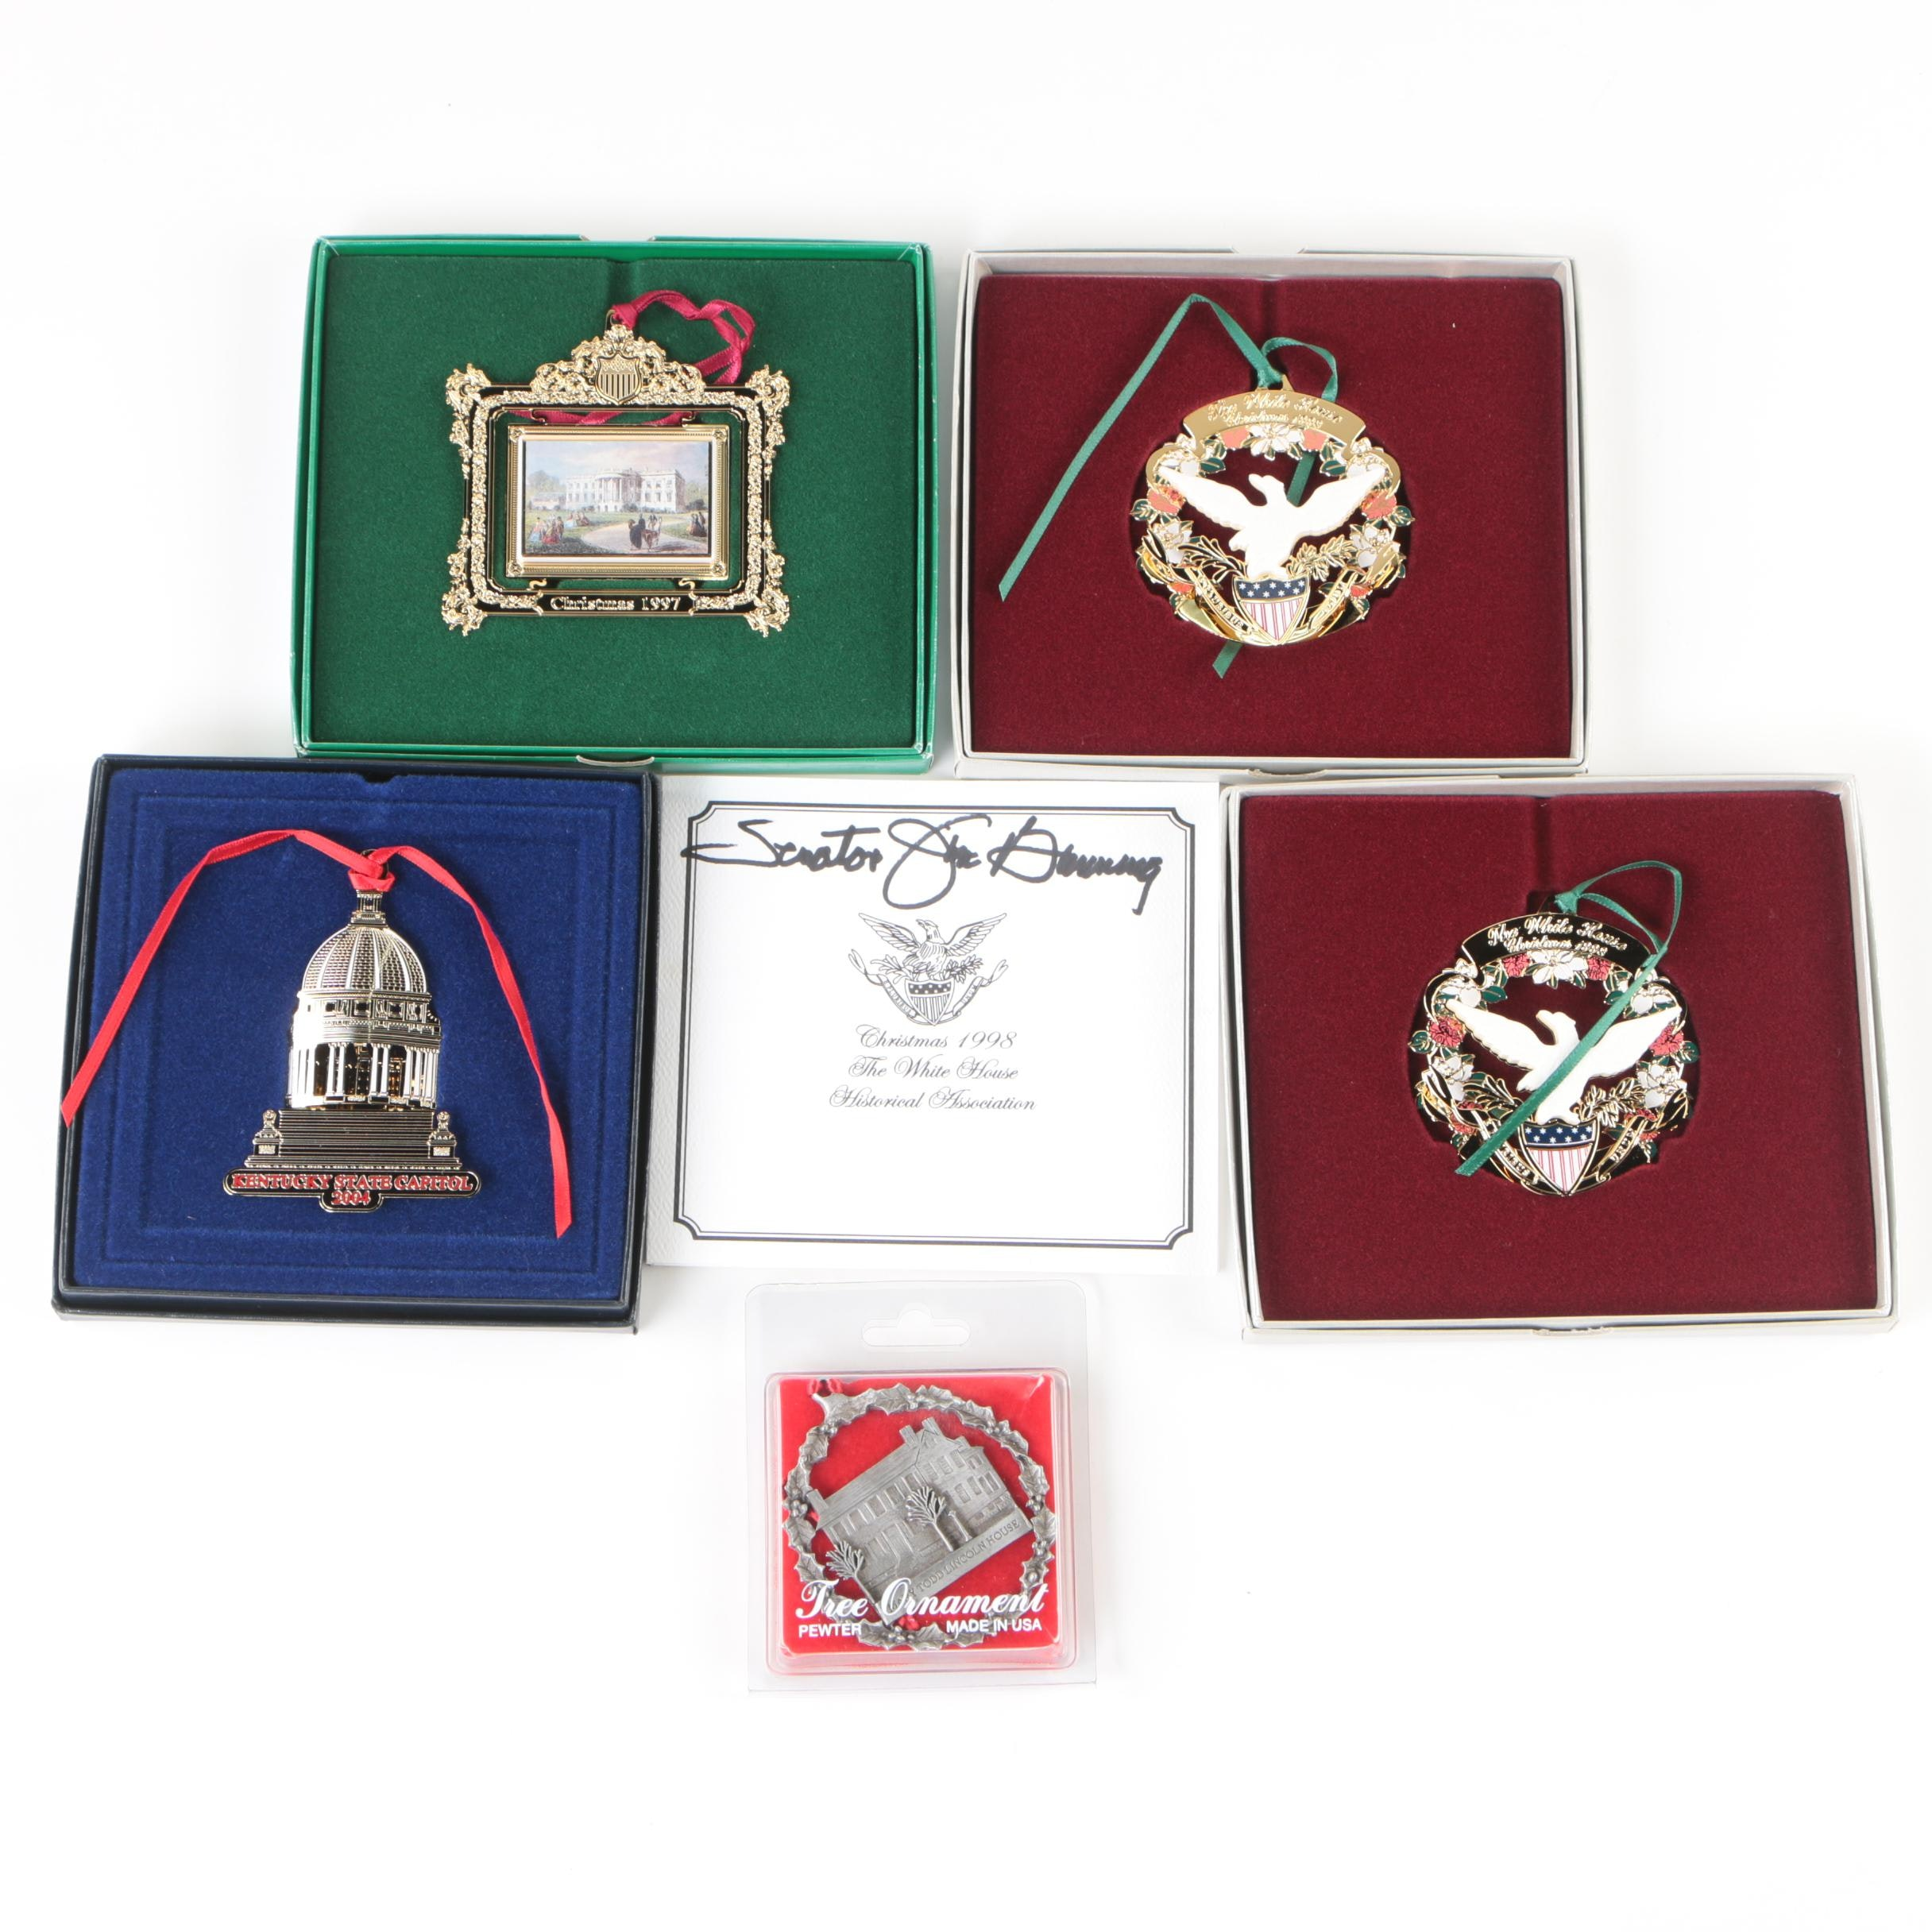 White House Historical Association Christmas Ornaments and More